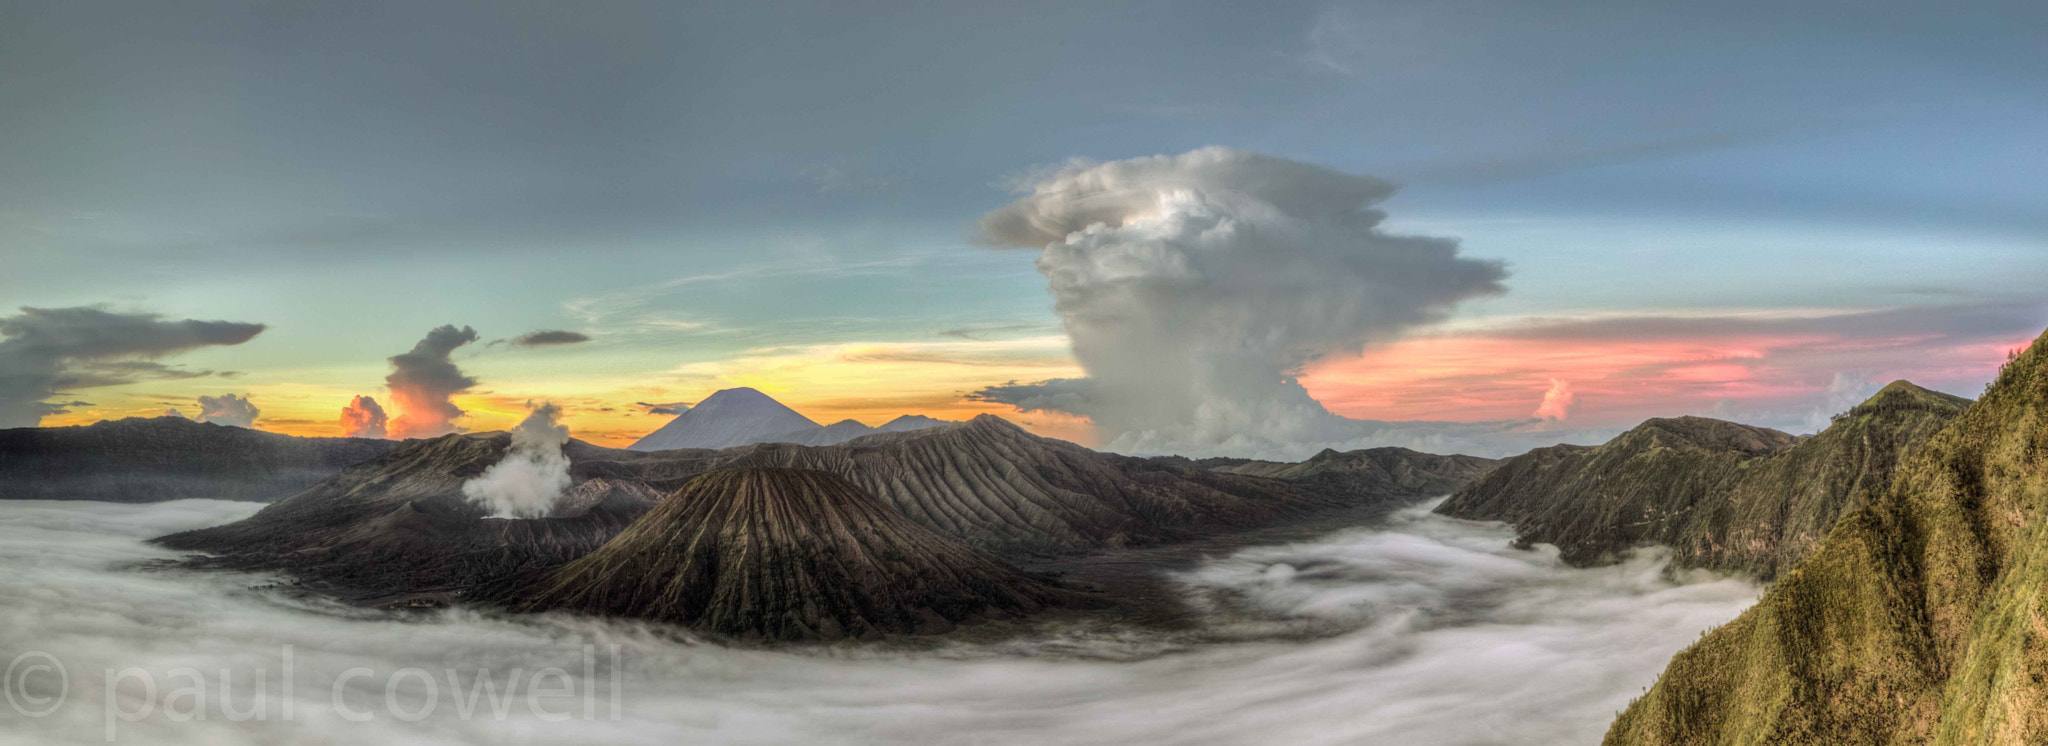 Photograph bromo tengger semaru national park by Paul Cowell on 500px